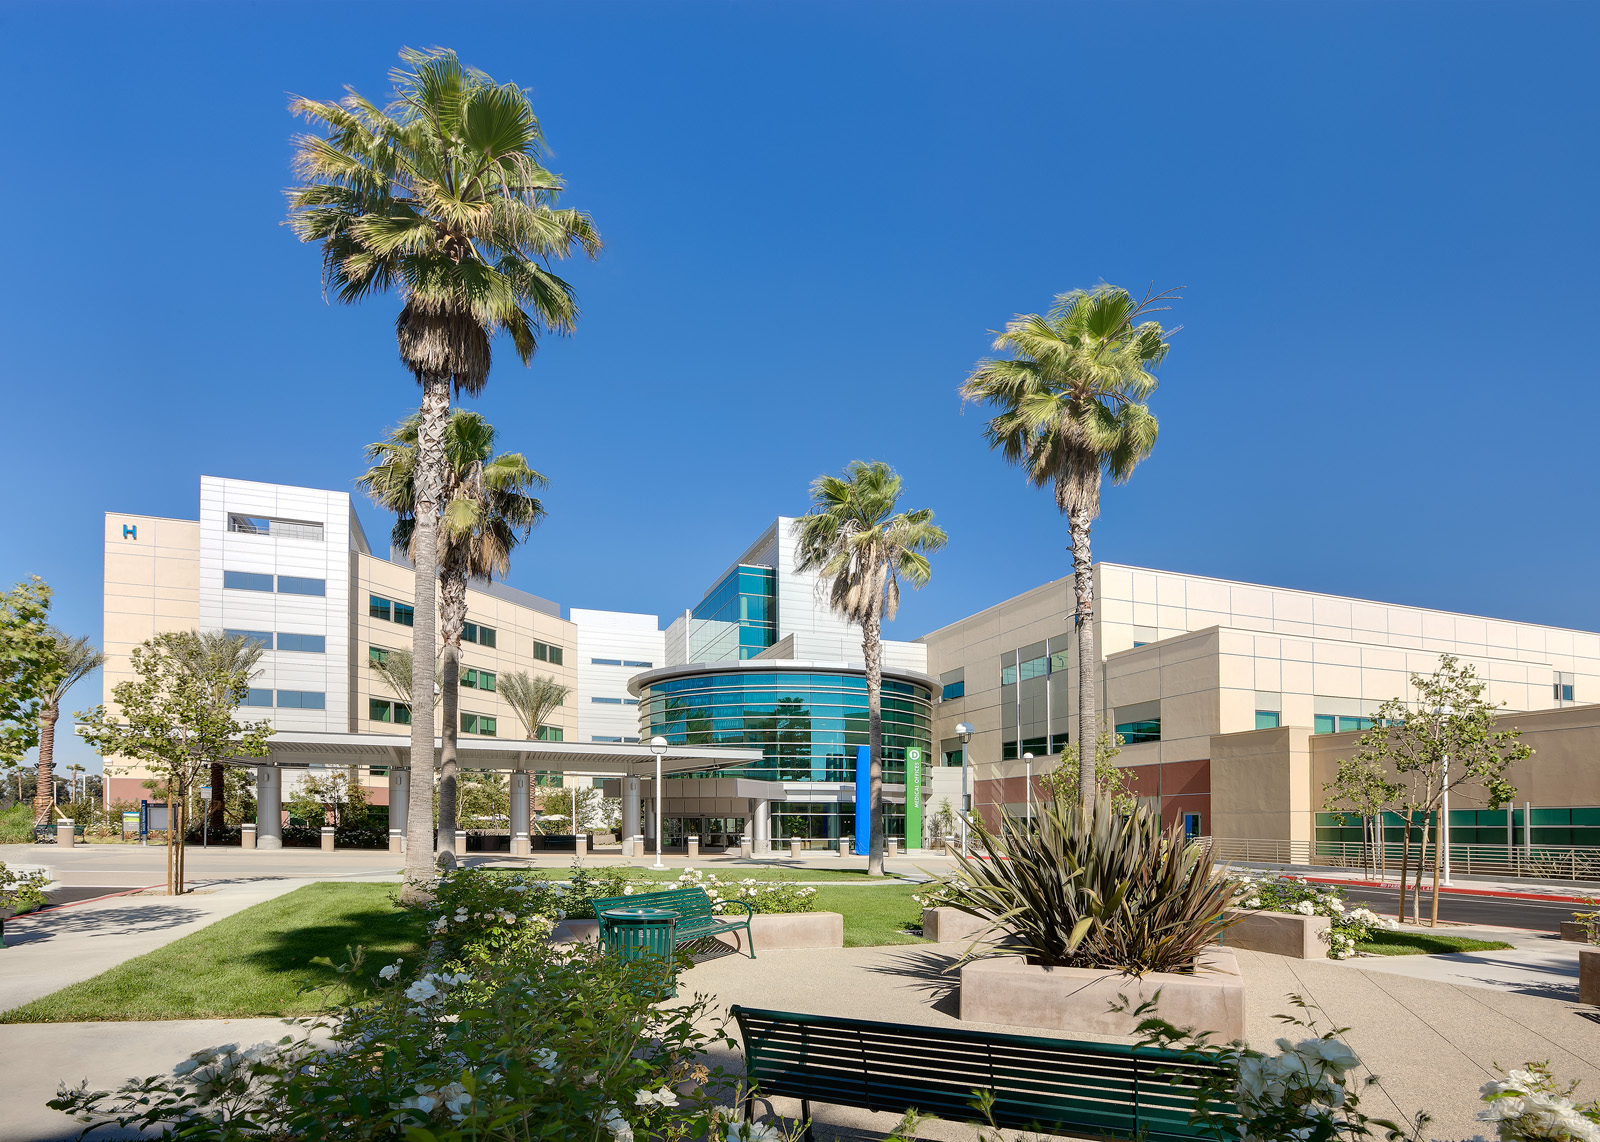 Facility - Radiation Oncology